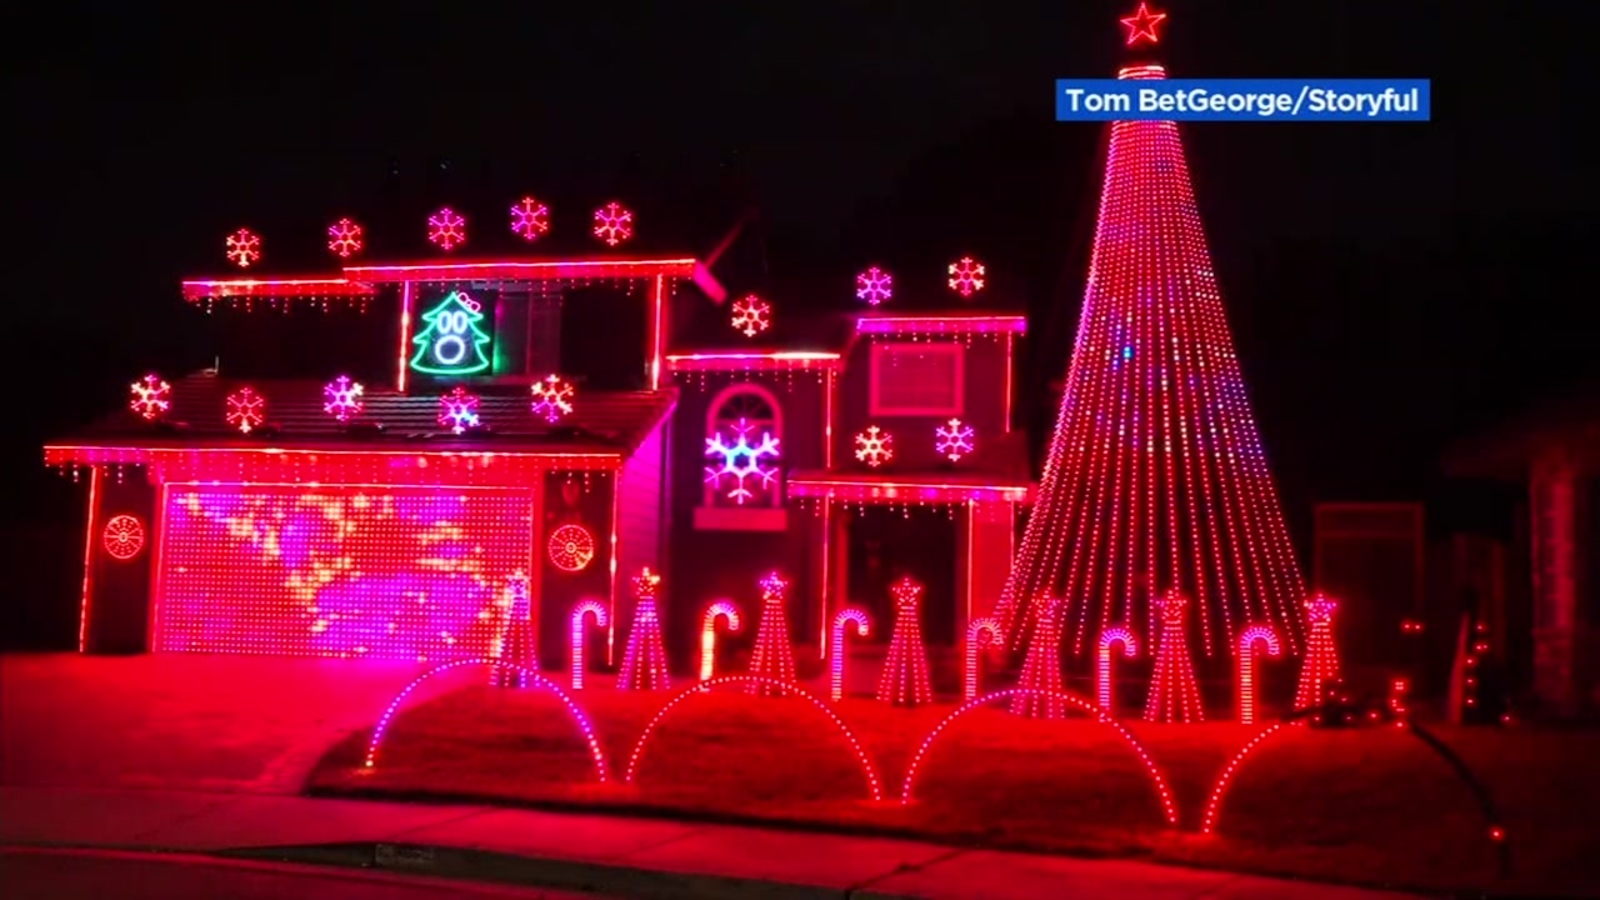 Morris Park Christmas Lights 2021 Hours Of Operation Tracy Man Revives Masterful Christmas Light Show Display With New Meaning For 2020 Holidays Abc7 San Francisco